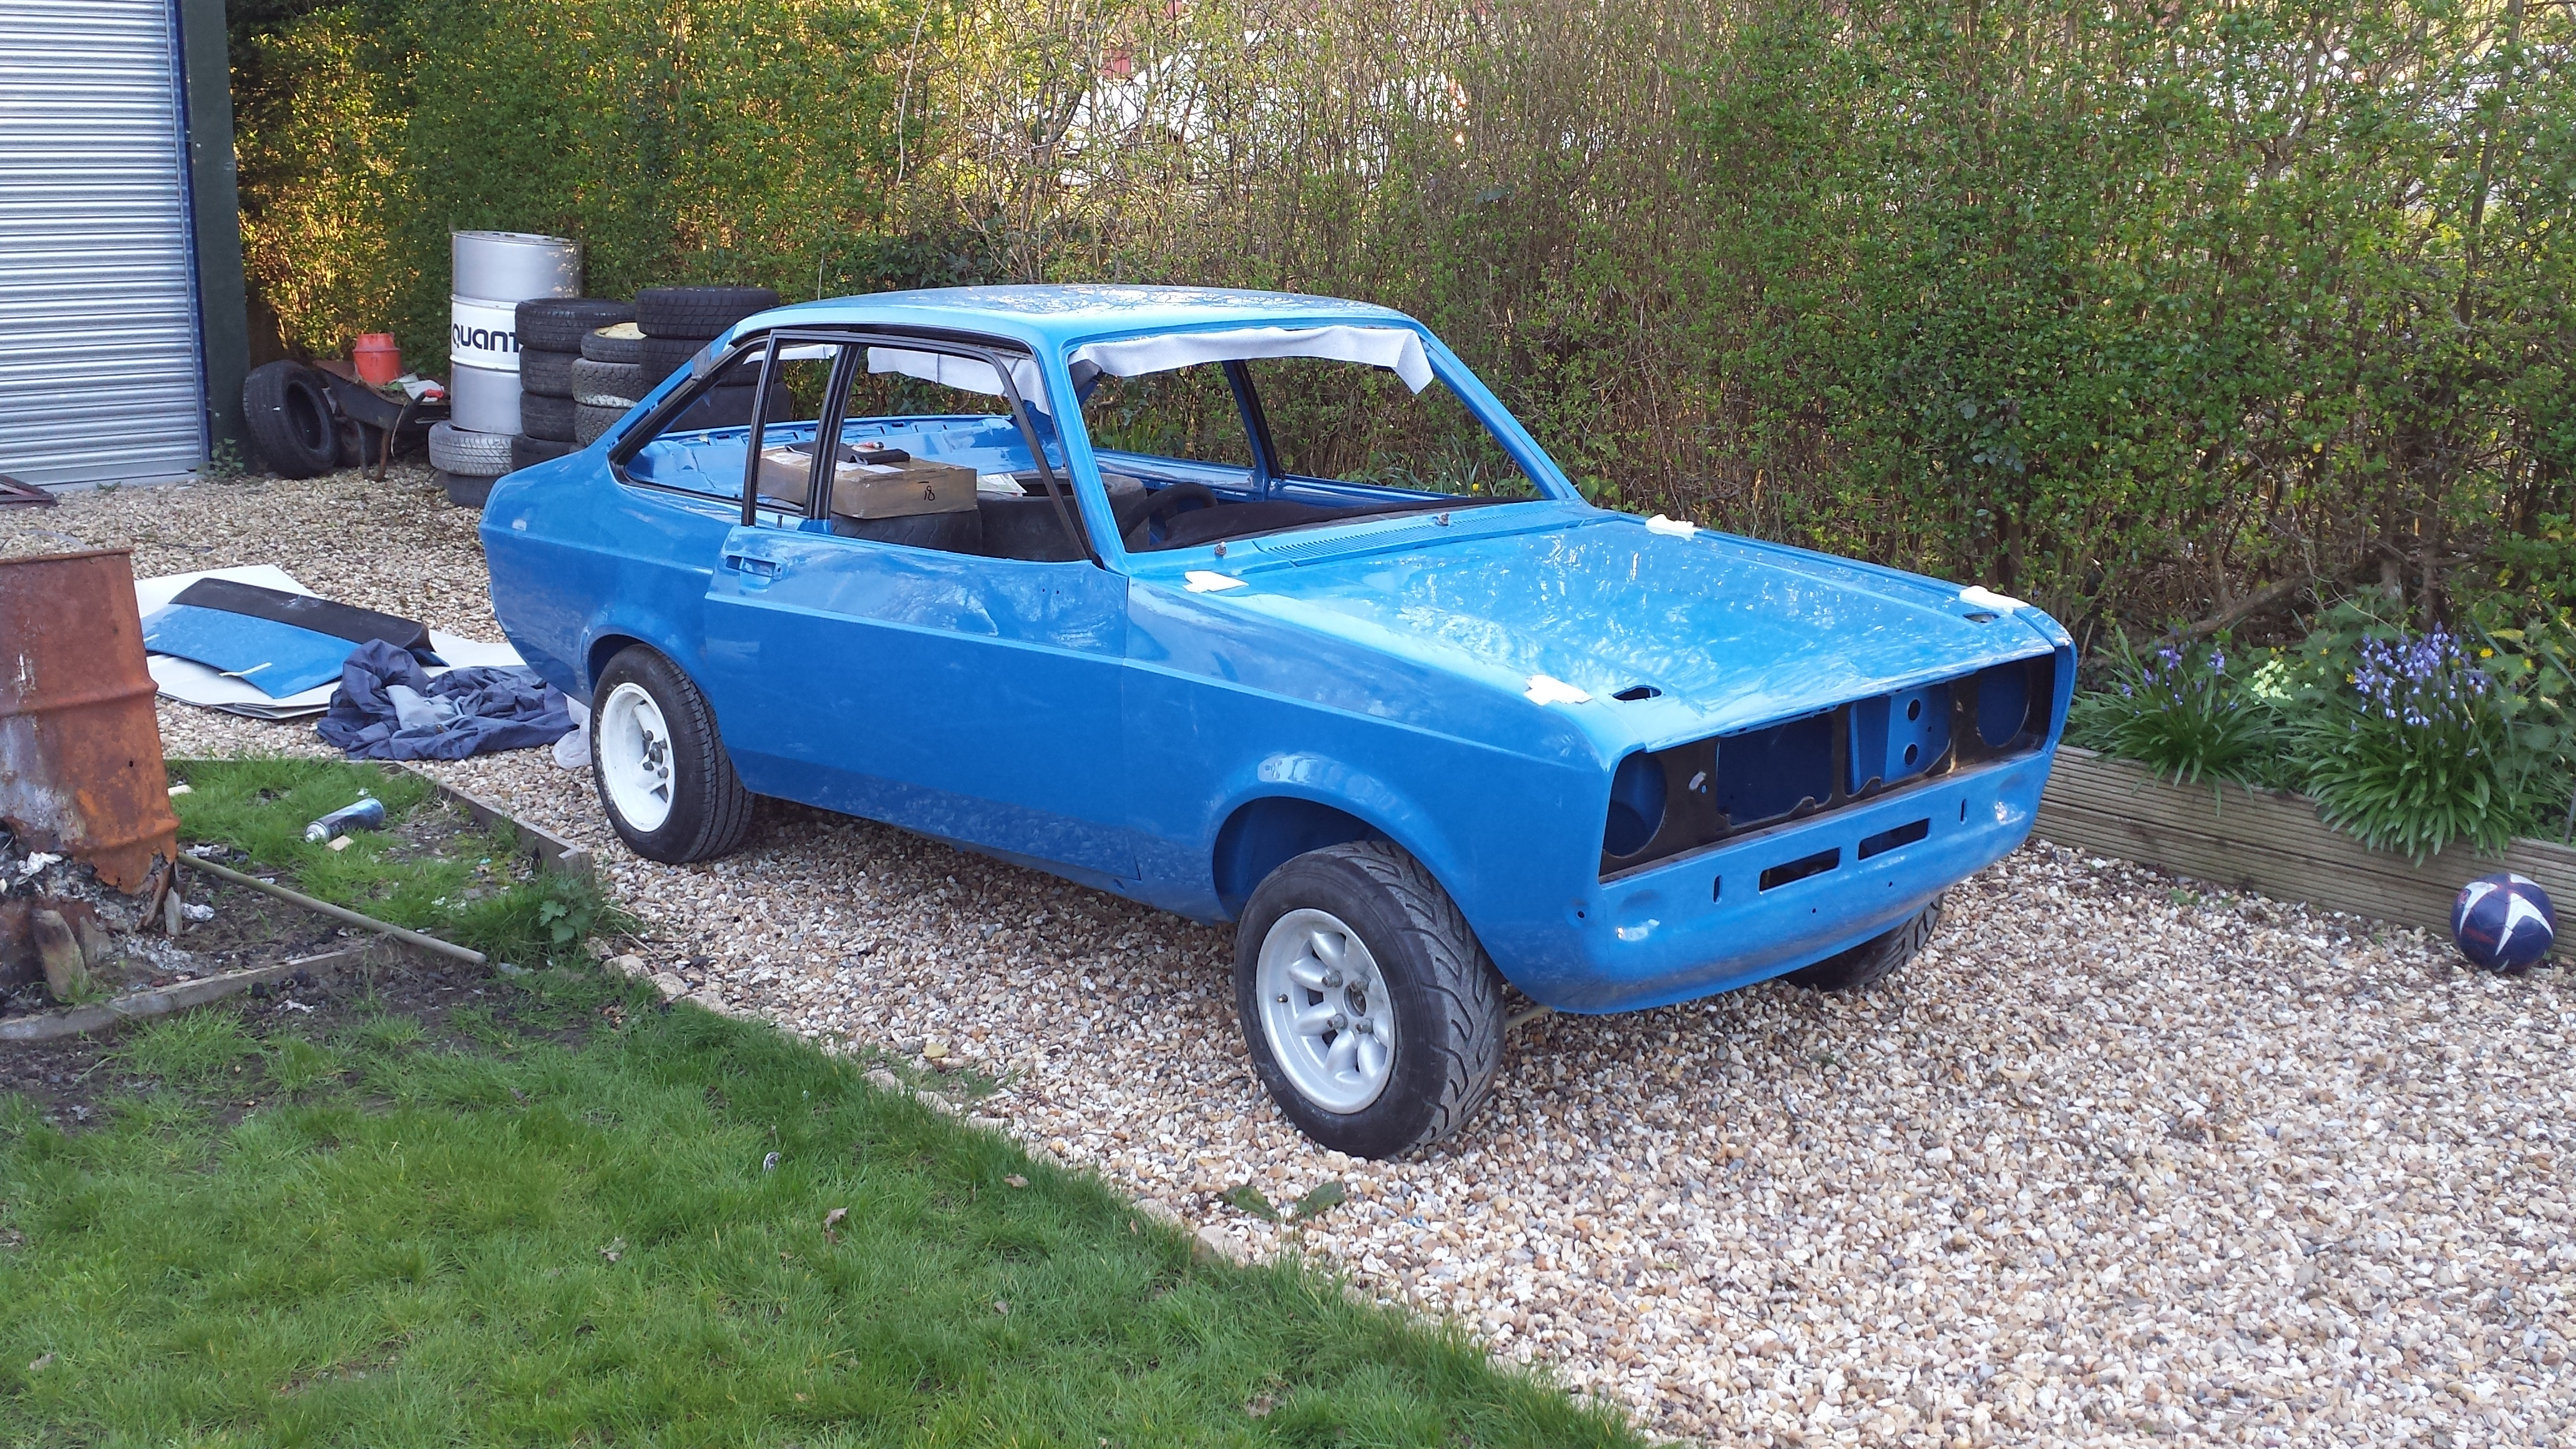 Enchanting Road Rally Cars For Sale Uk Pattern - Classic Cars Ideas ...